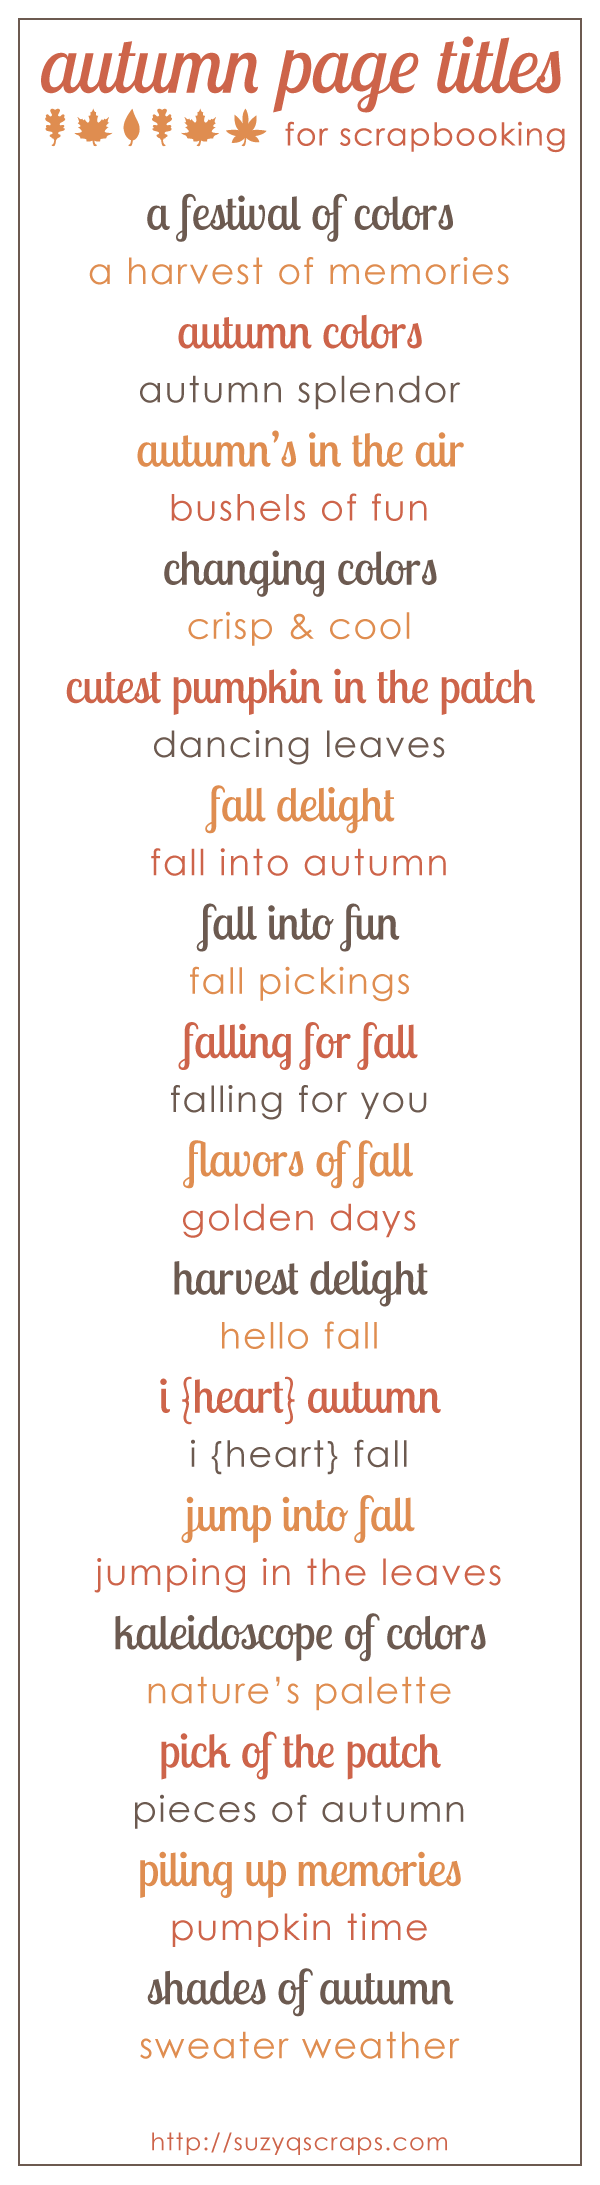 Scrapbook ideas and quotes - Fall Scrapbook Ideas Fall Autumn Scrapbook Page Titles